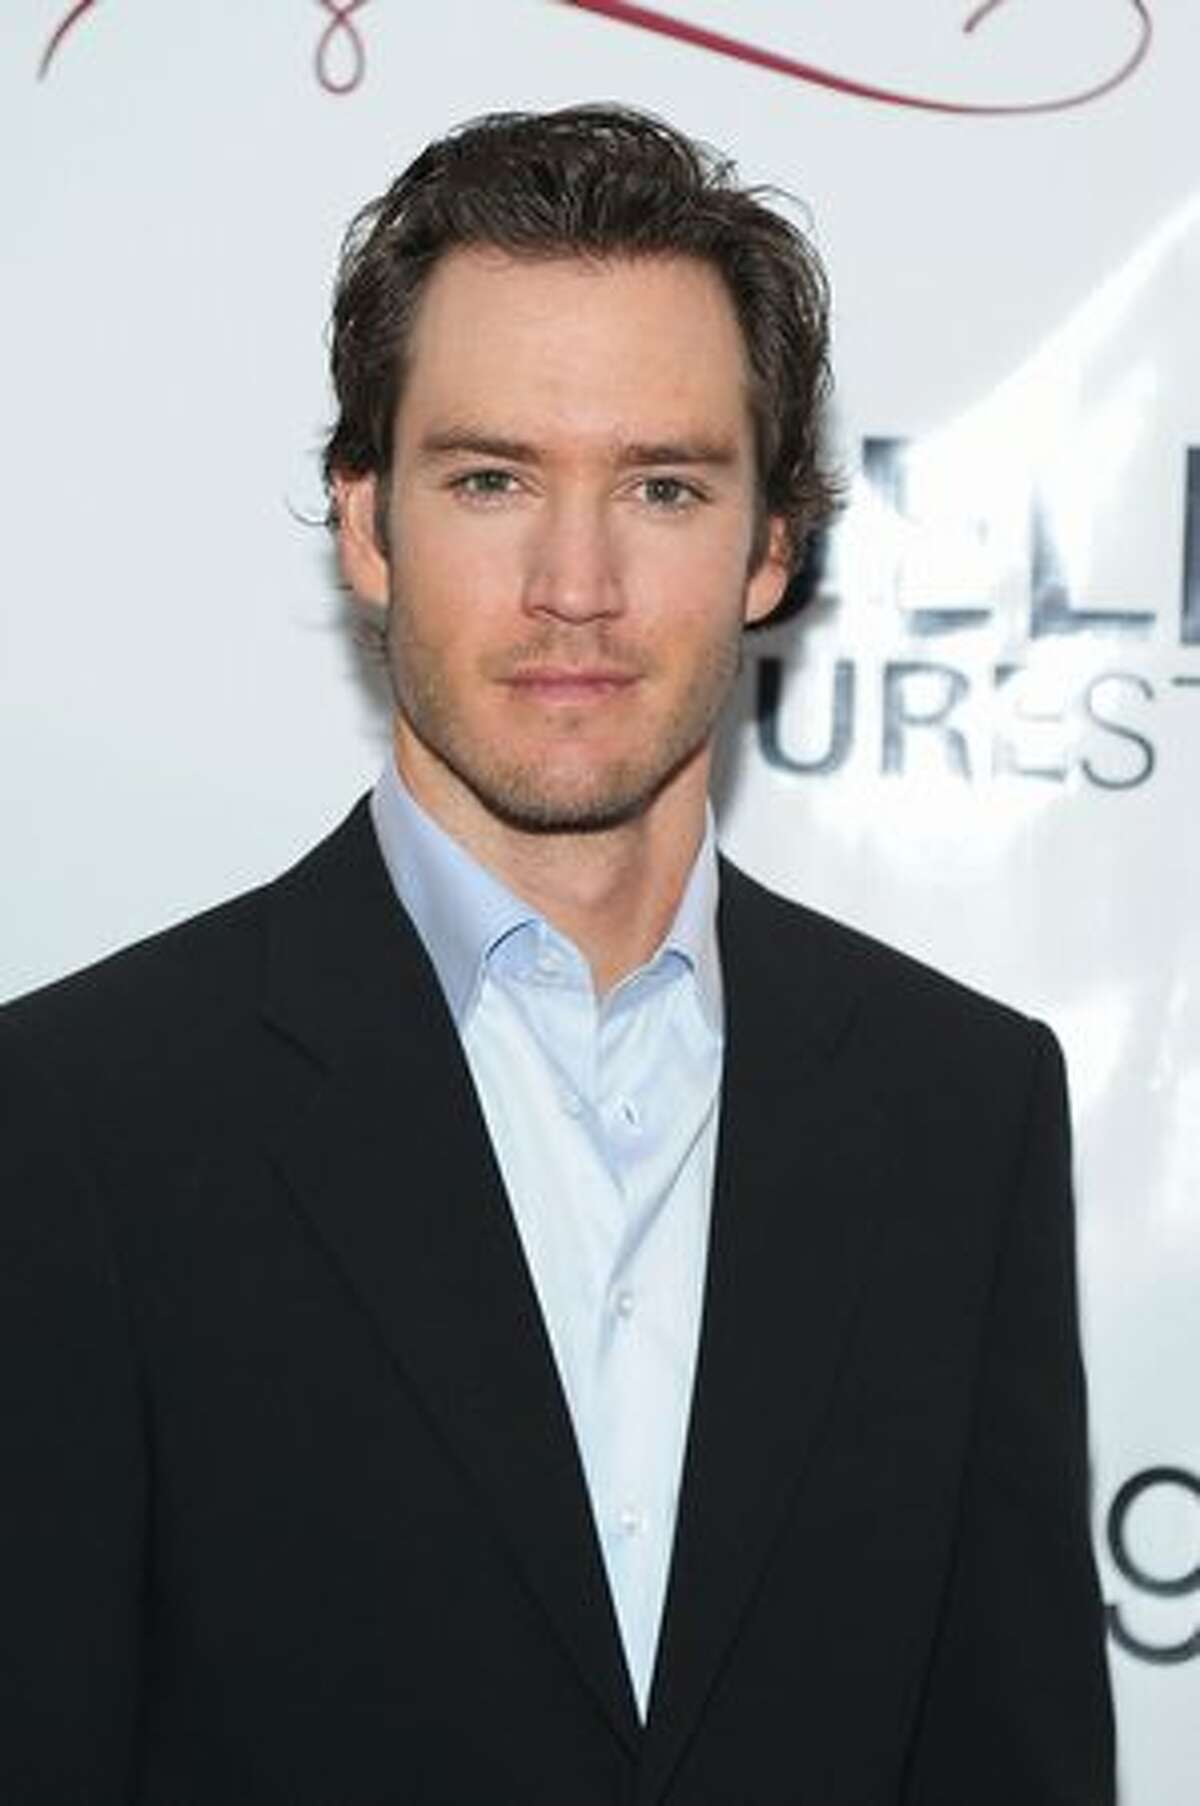 Actor Mark-Paul Gosselaar attends the 76th Annual Drama League Awards ceremony and luncheon at the Marriot Marquis on May 21, 2010 in New York City.